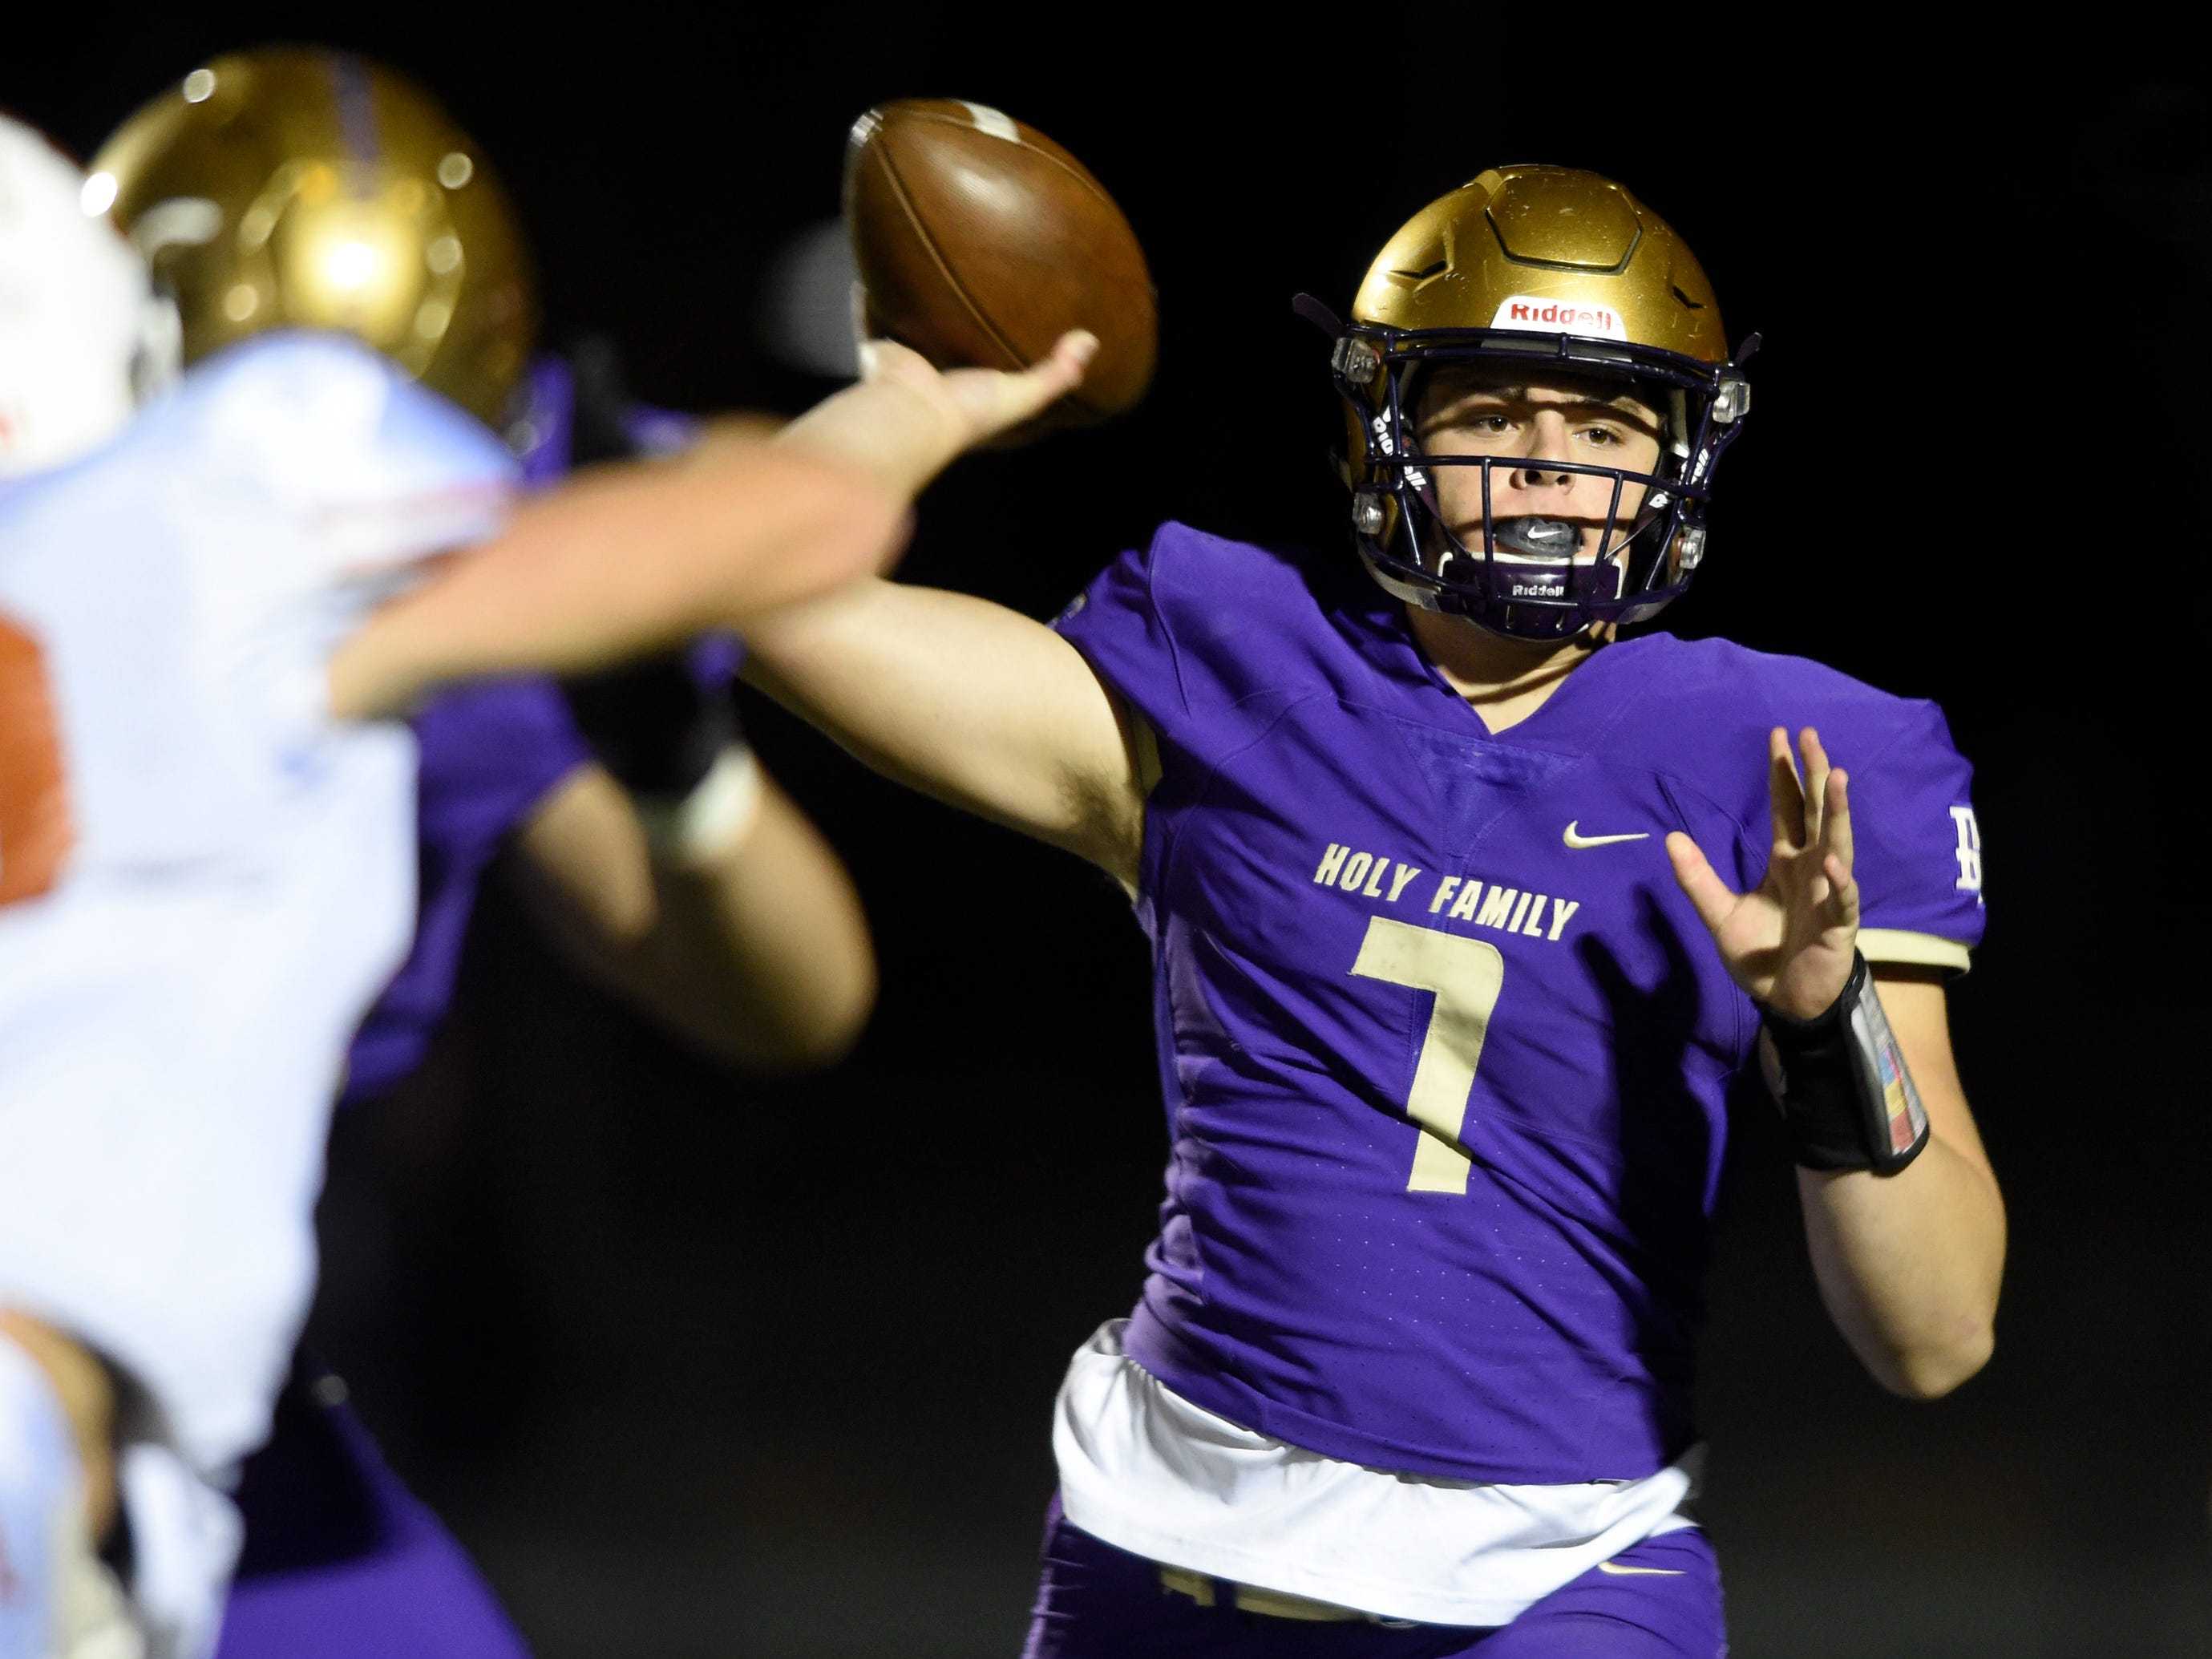 Holy Family High School's Kyle Helbig is committed to CSU after being a do-it-all player for the Tigers.